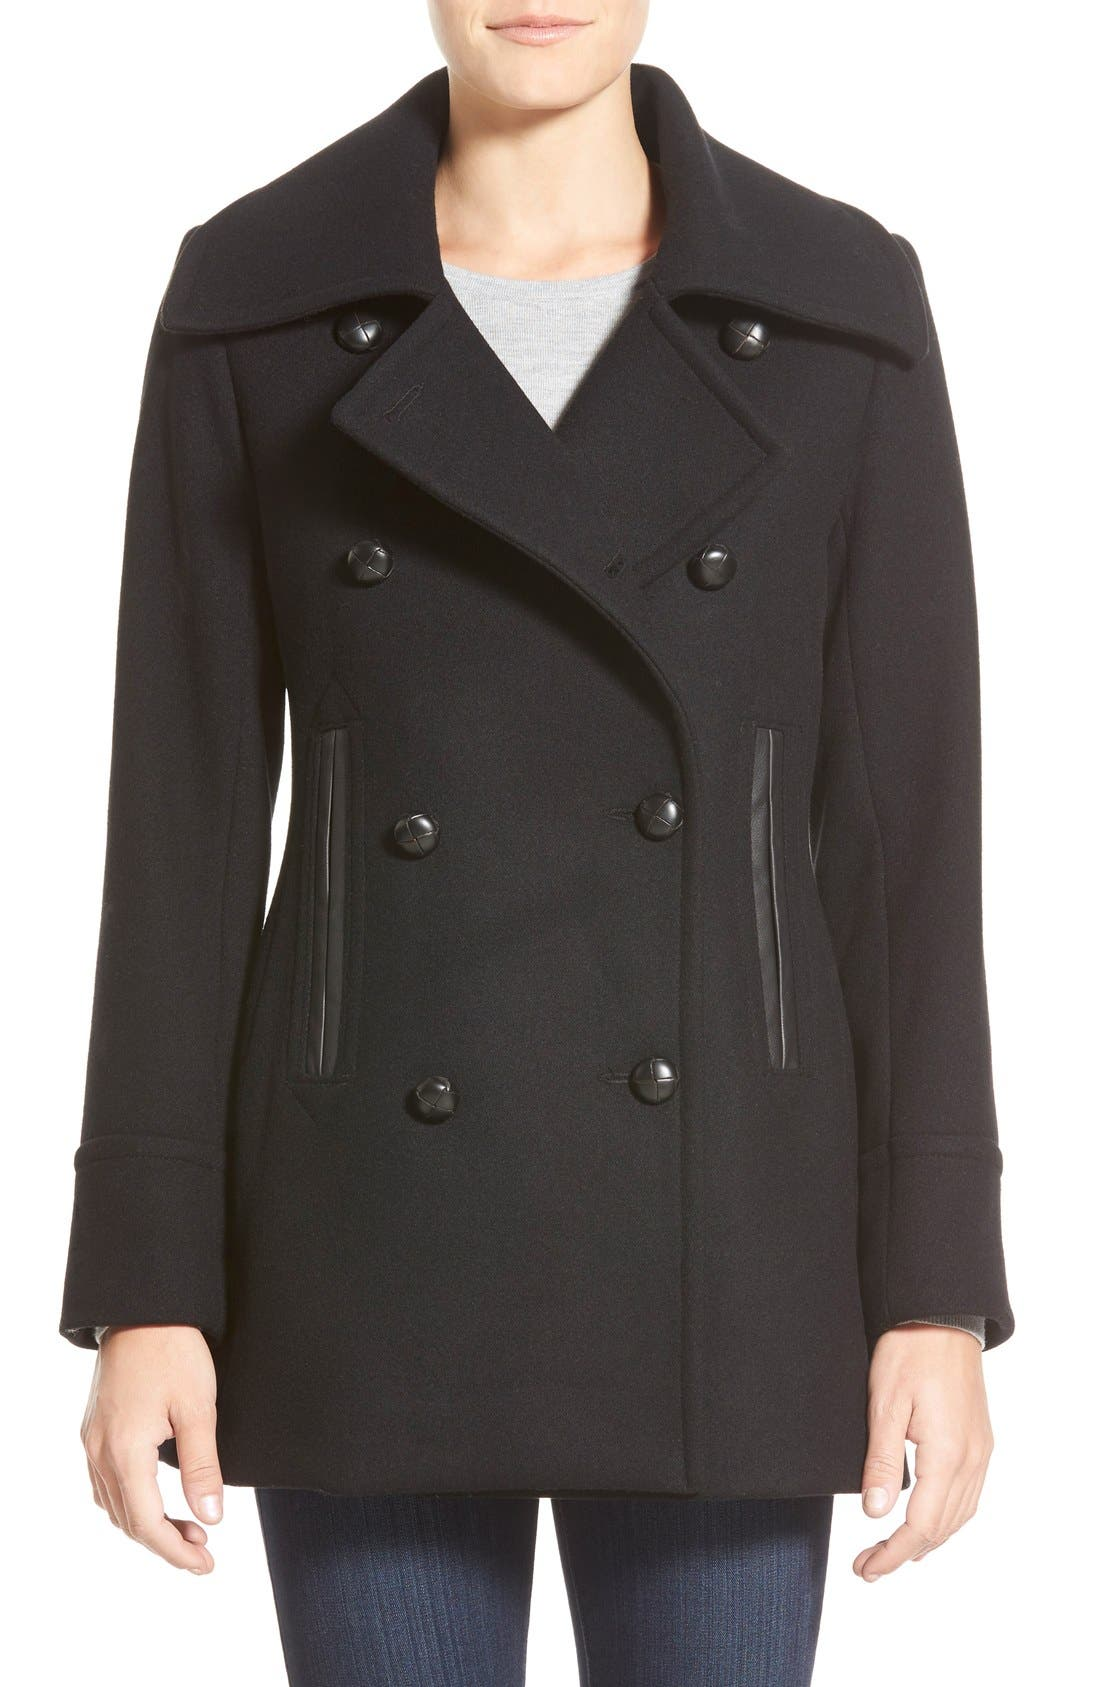 Main Image - Pendleton'Cascades' Double Breasted Wool Blend Peacoat